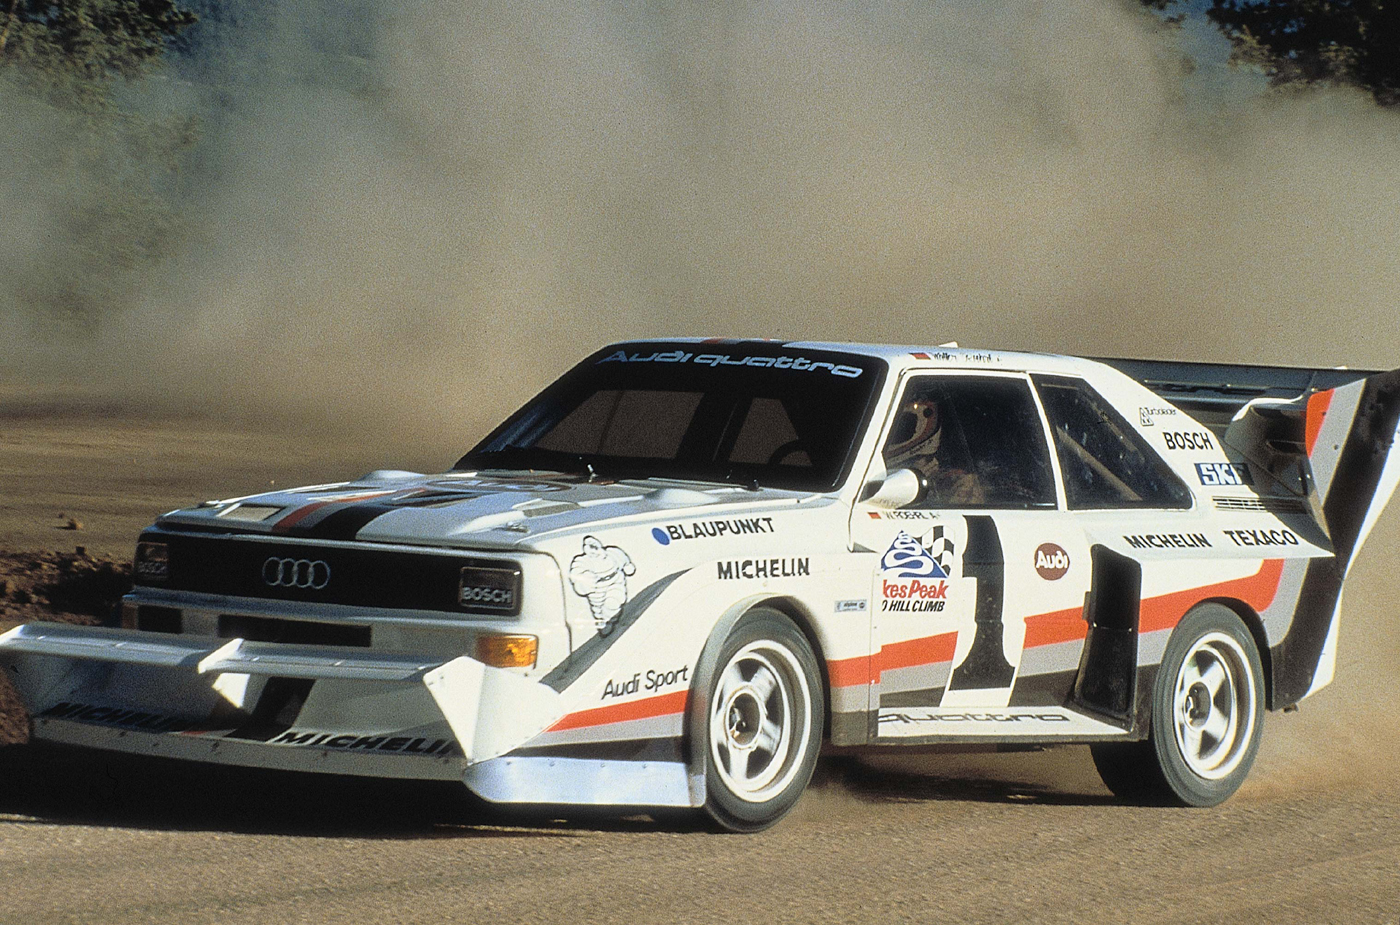 audi sport quattro s1 photos reviews news specs buy car. Black Bedroom Furniture Sets. Home Design Ideas